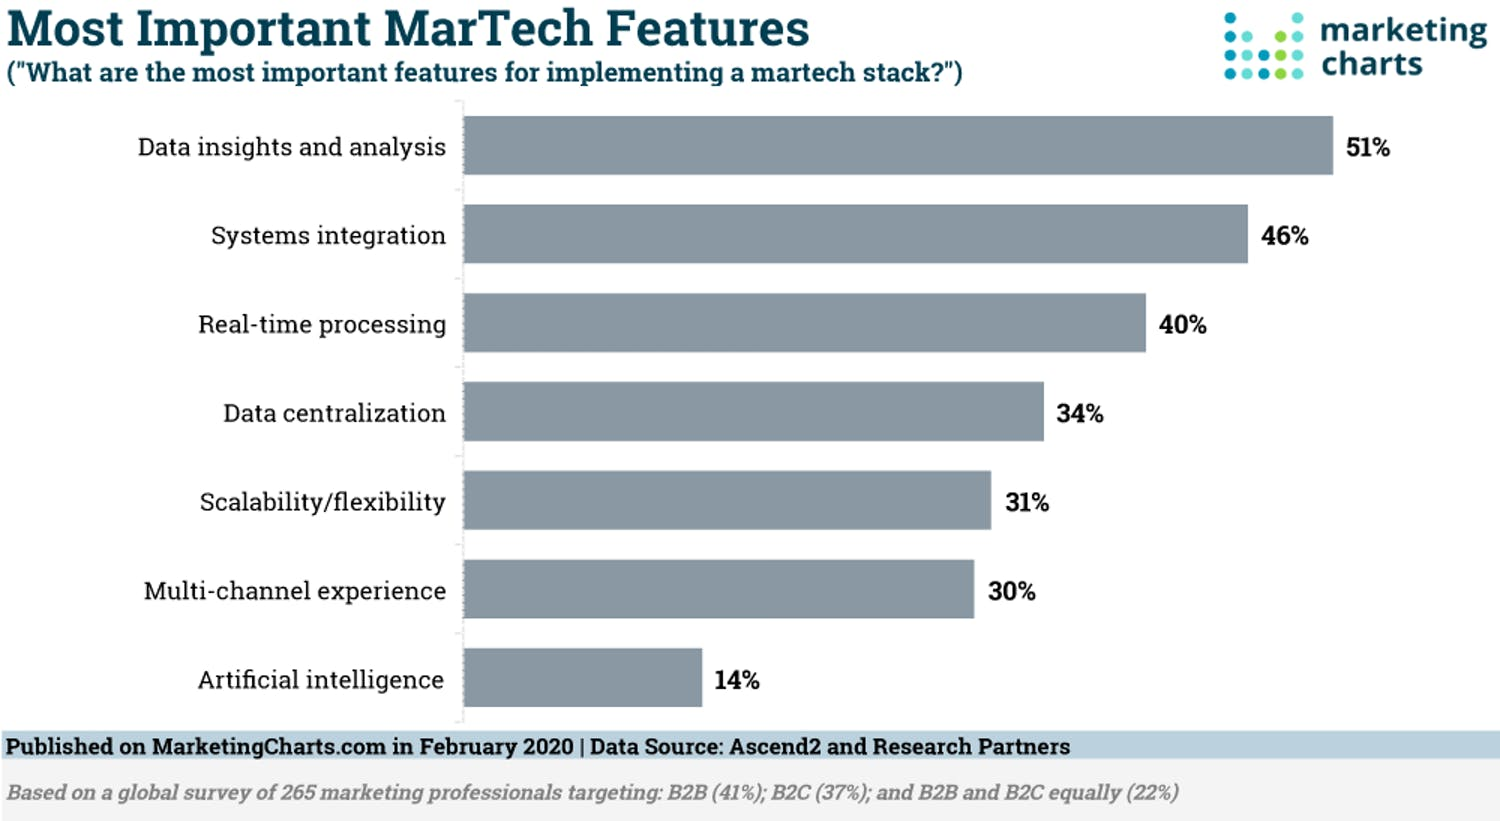 Diagram showing the most important marketing platform features, rated by marketers.